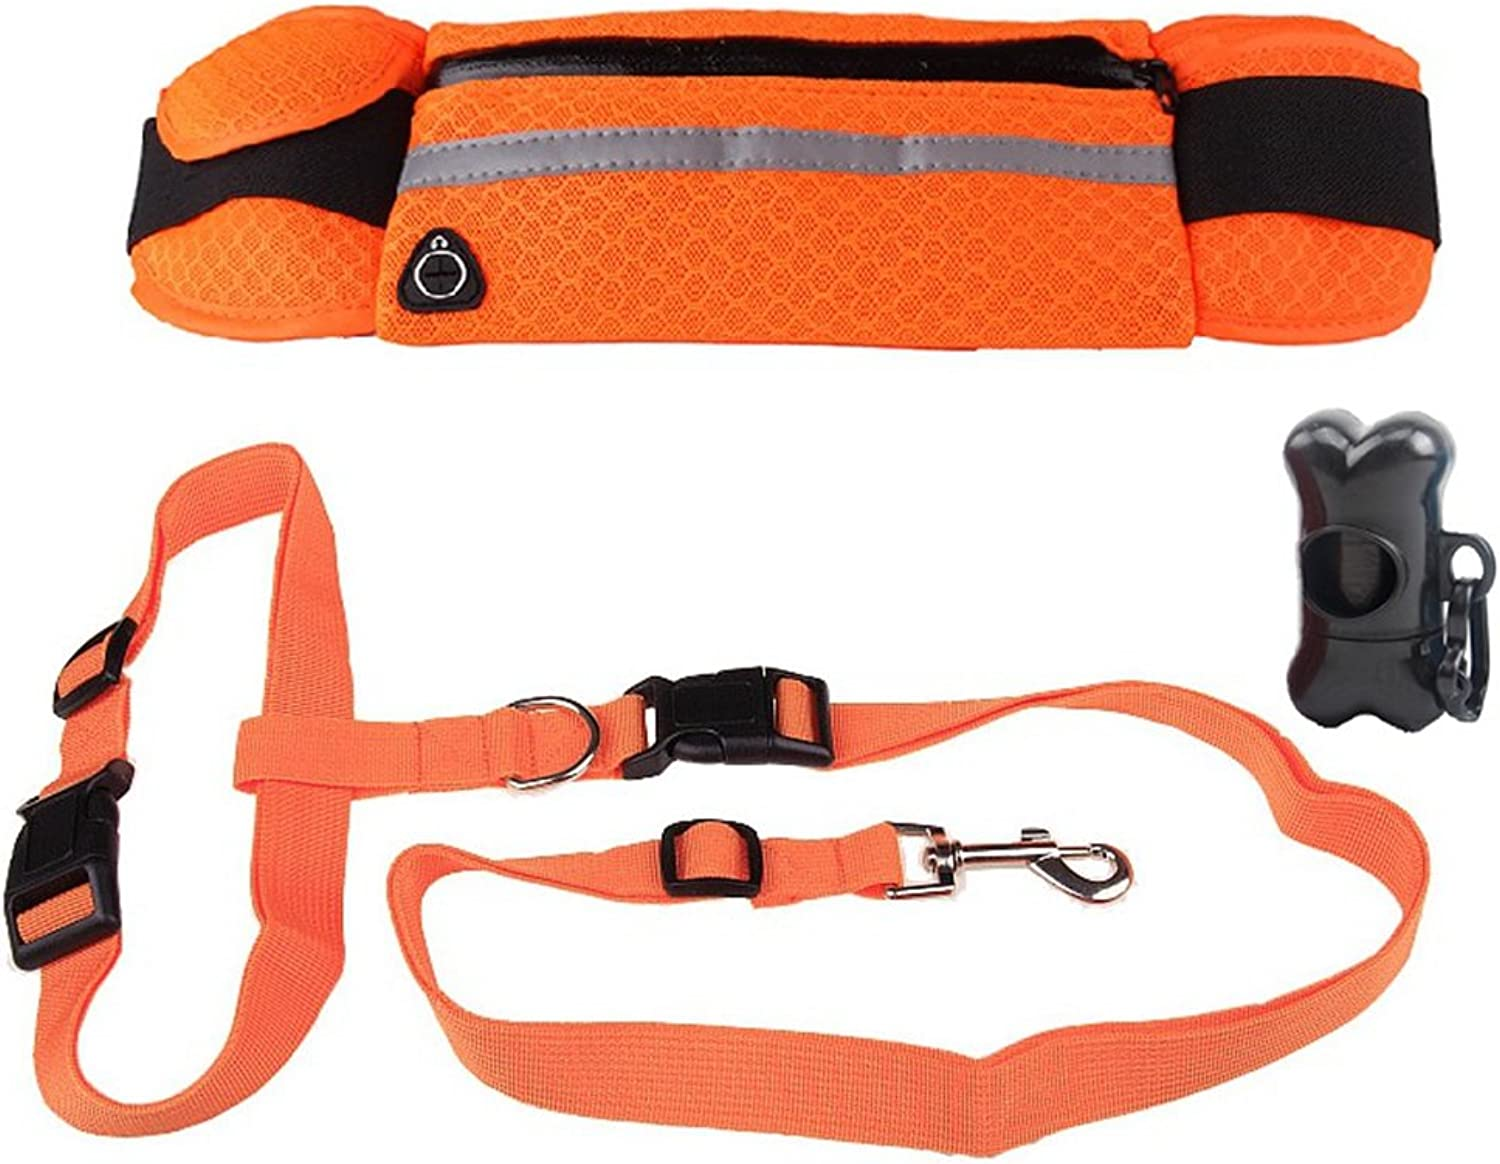 GINBL Adjustable Dog Hands Free Leash Belt with Pouch Pockets for Small Dogs Training Walking Running Belts Waist Packs